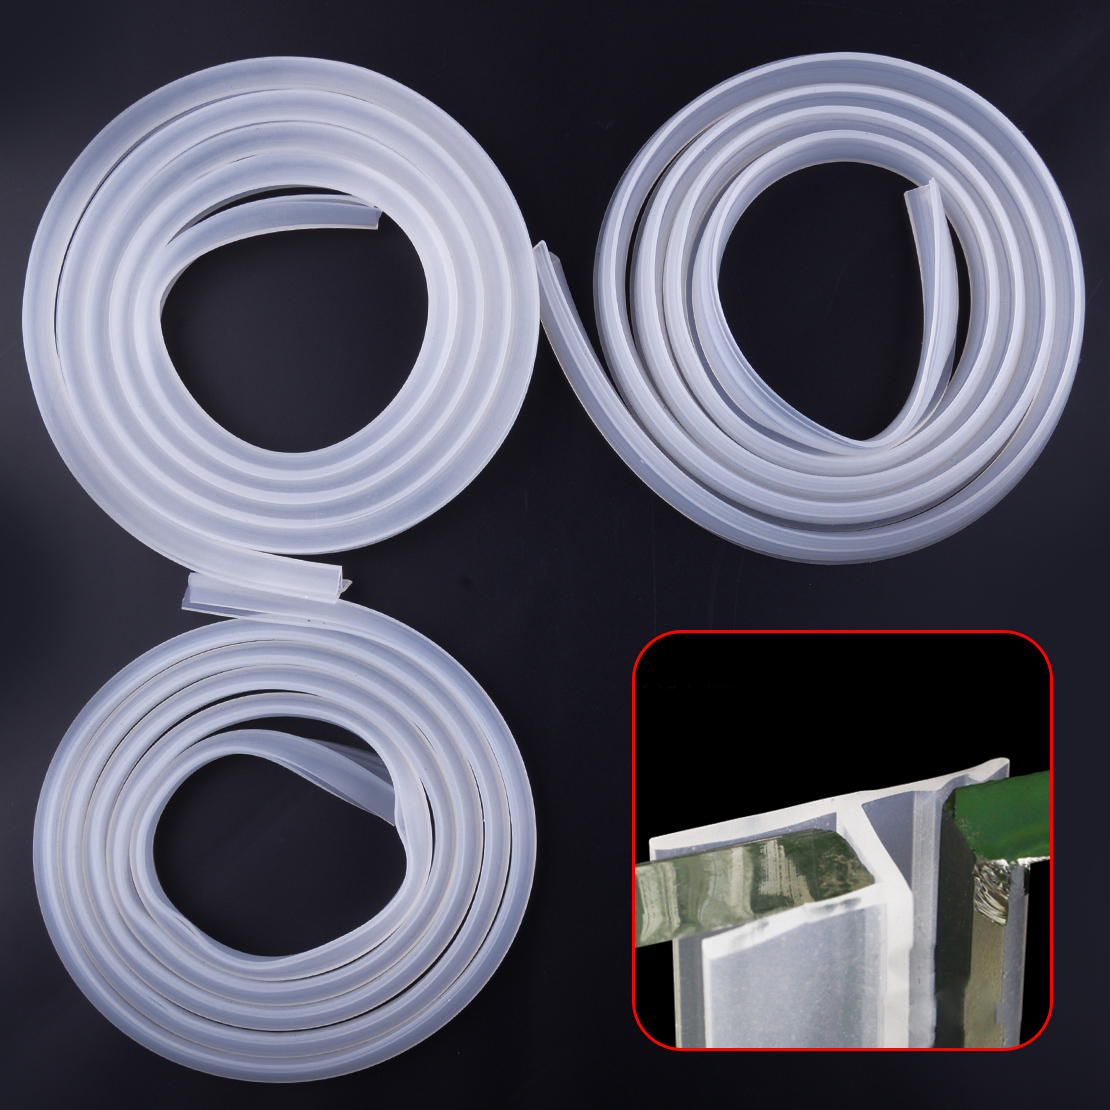 Us 7 59 24 Off 2m Rubber Silicone Bath Shower Room Screen Door Window Seal Strip Gap Curved Flat 0 6cm 1cm 1 2cm In Bathroom Accessories Sets From